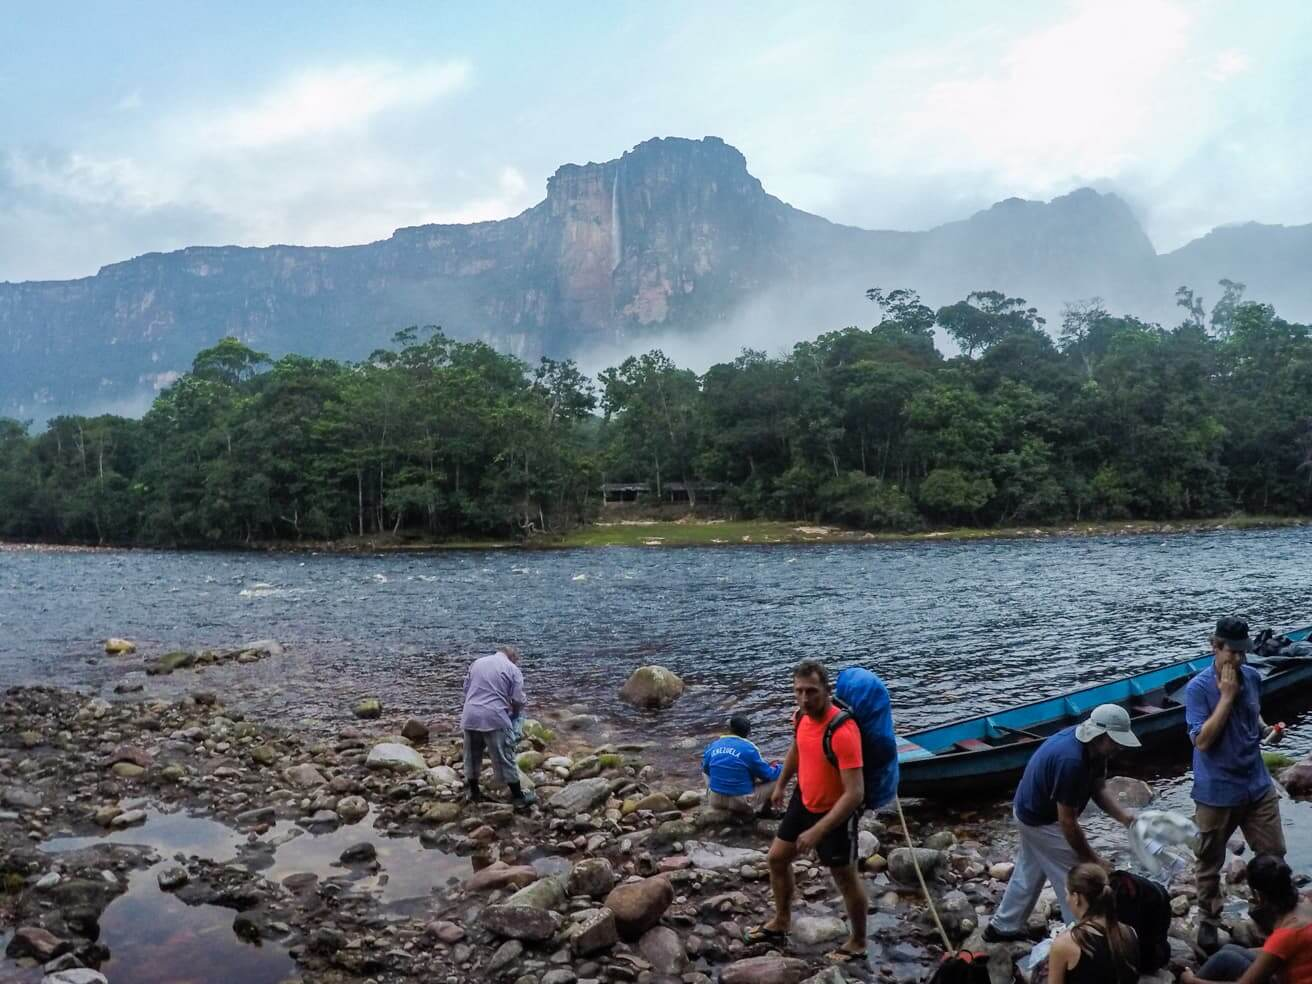 Visiting Angel Falls, Venezuela - the tallest waterfall in the world